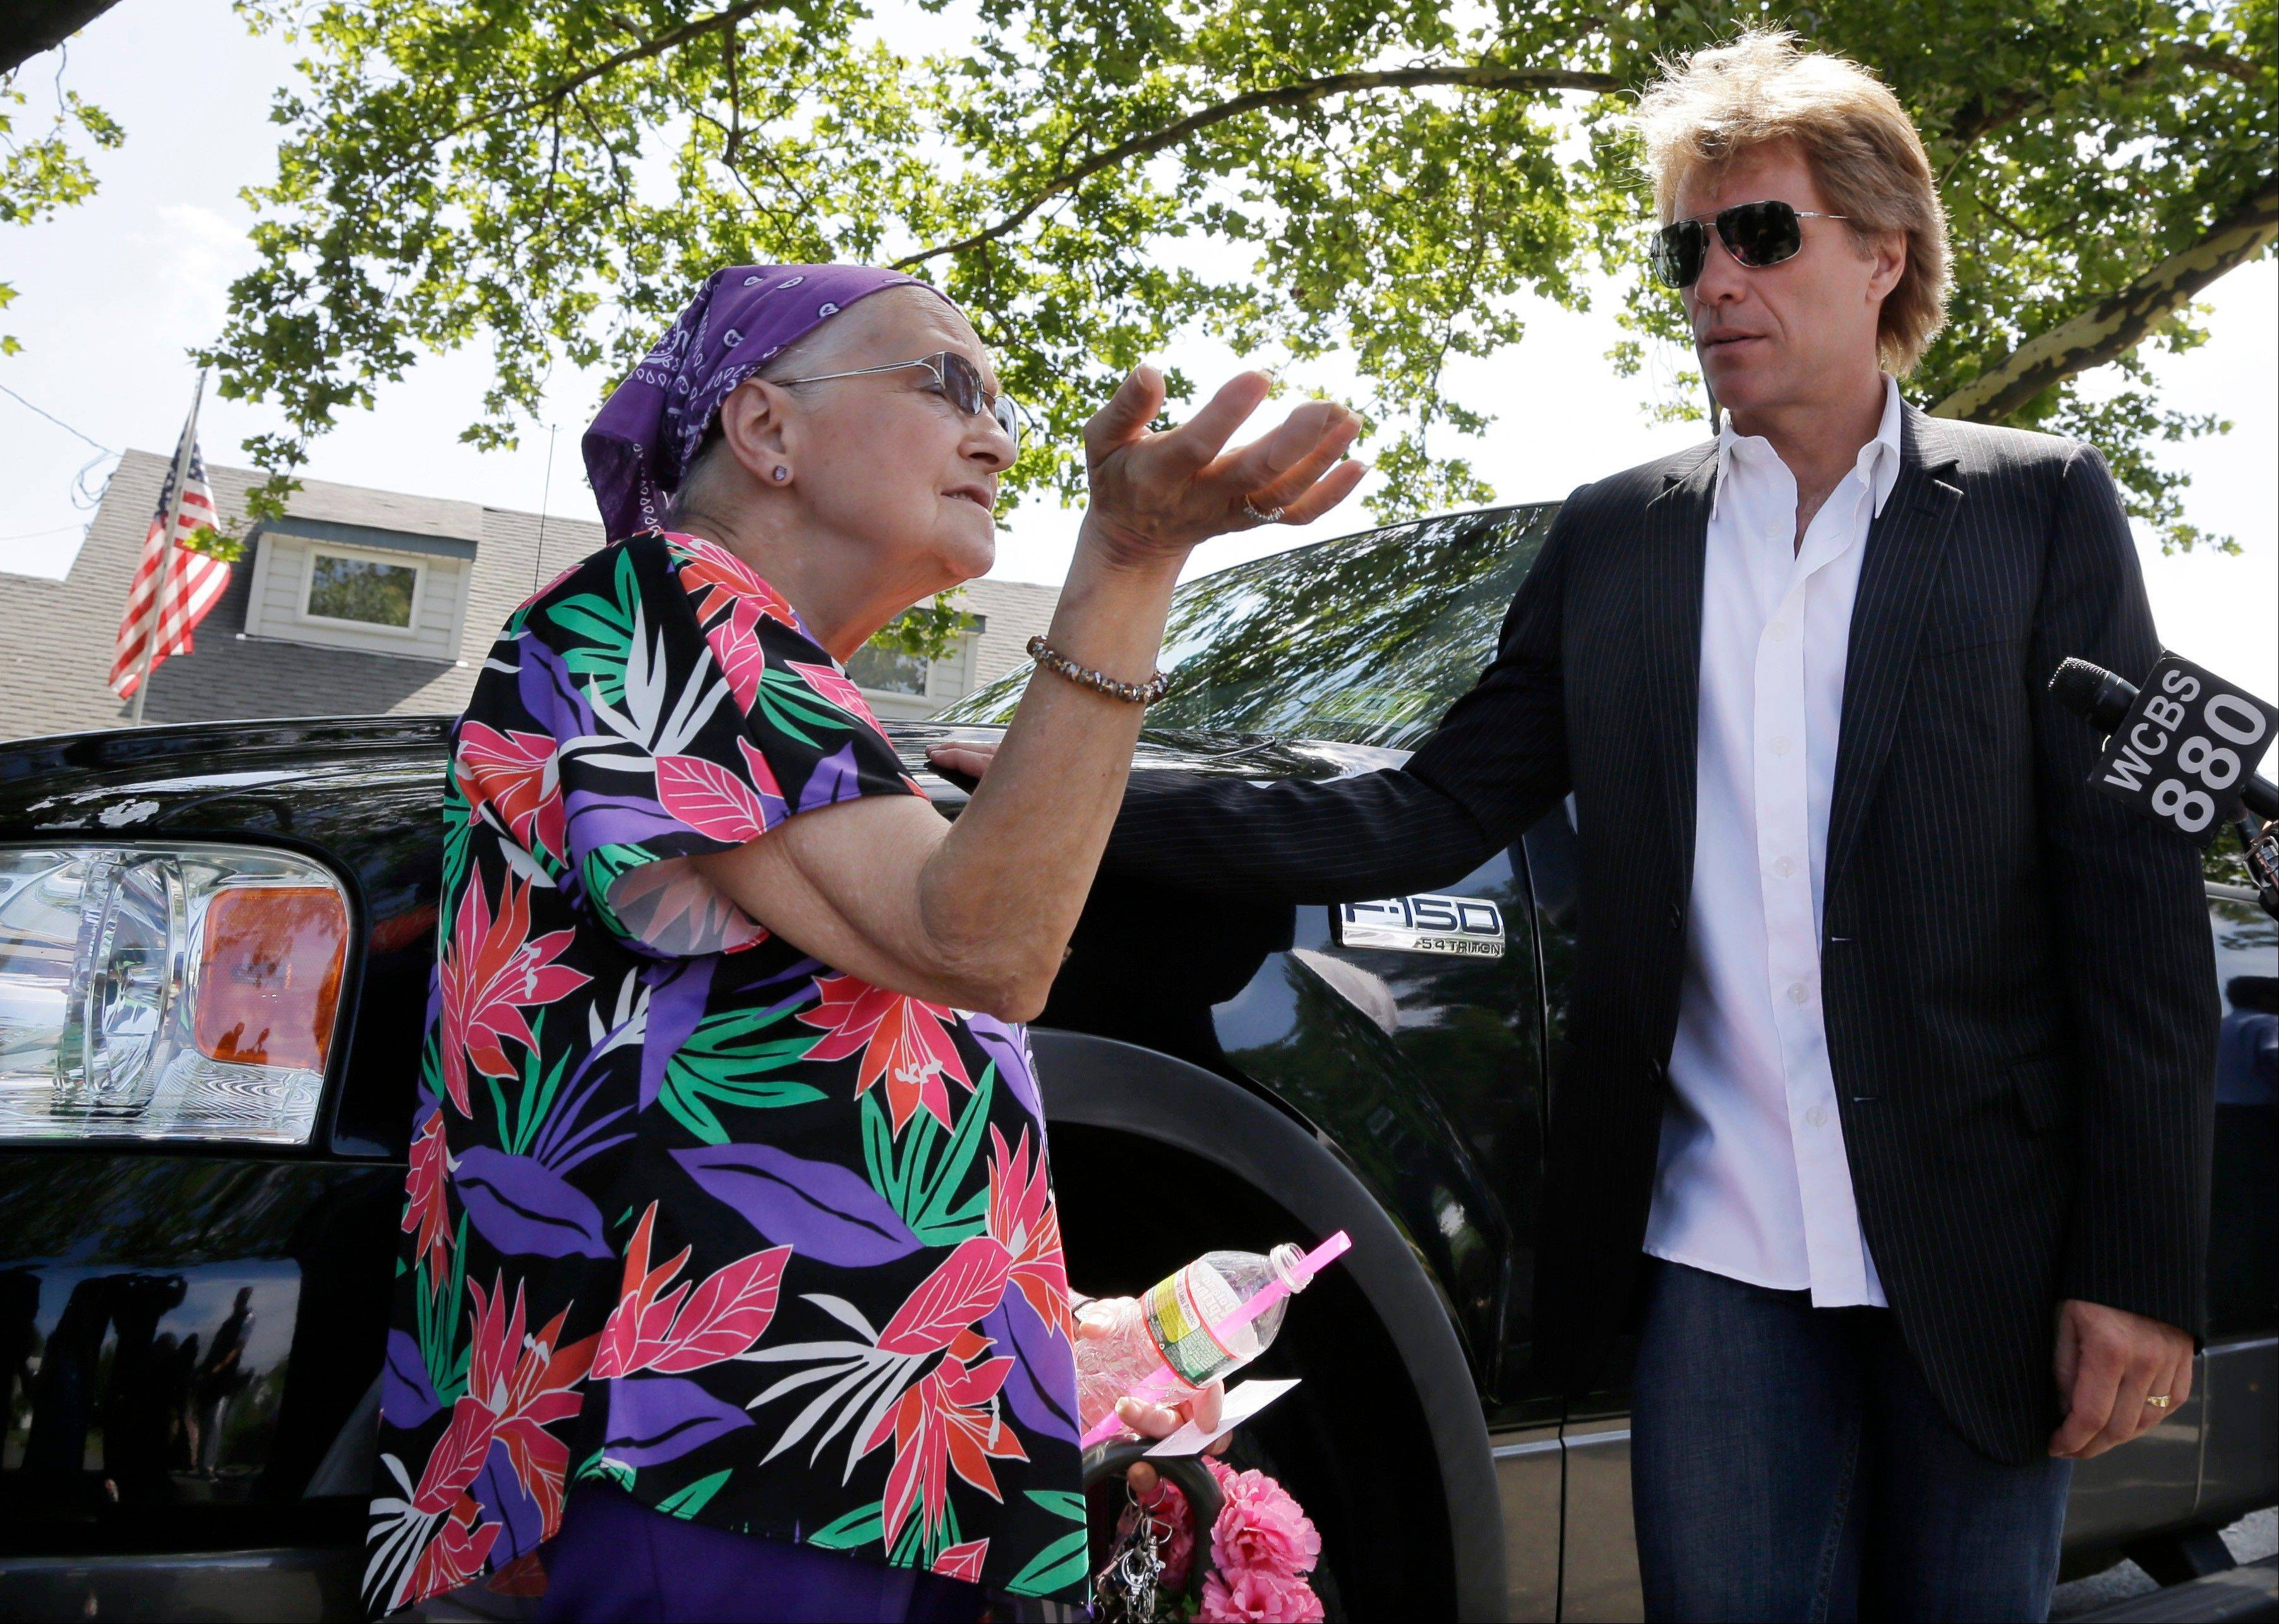 Sharon Mary Atkinson describes some of the devastation from Superstorm Sandy to singer Jon Bon Jovi, right, as he walked through his hometown of Sayreville, N.J., with New Jersey Gov. Chris Christie. Bon Jovi is giving $1 million to help the band's home state recover from Superstorm Sandy.